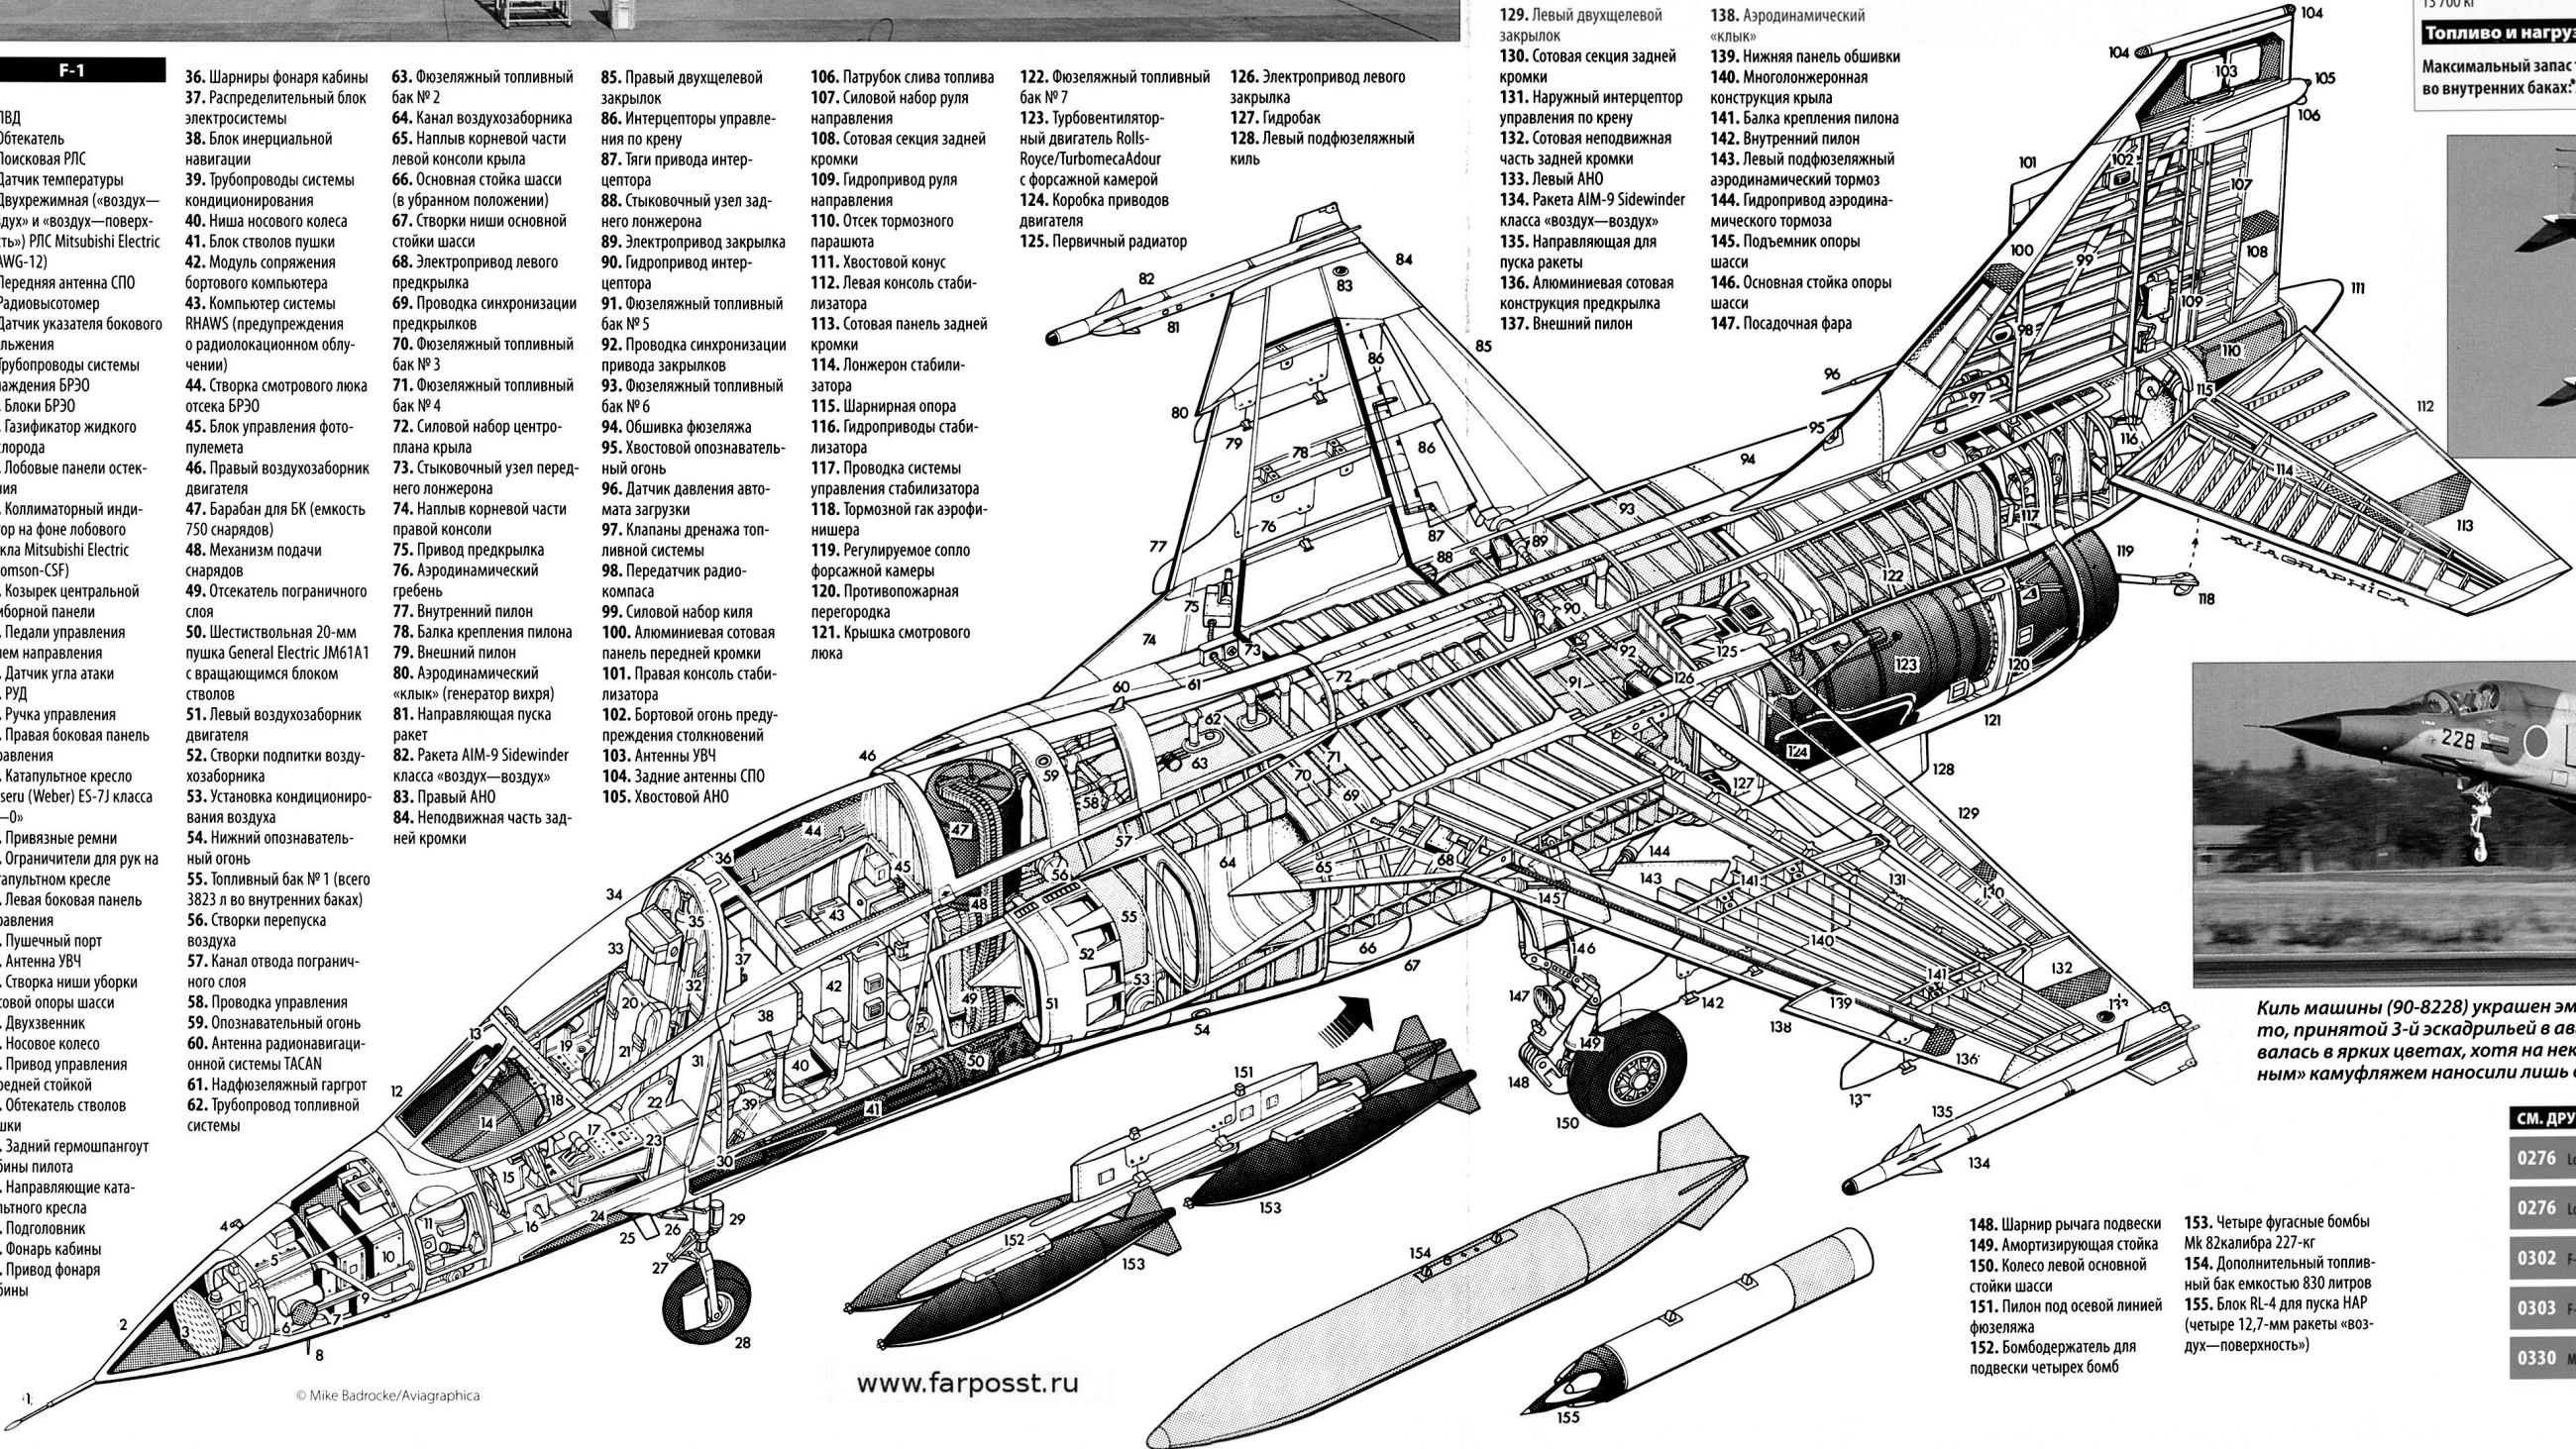 Mitsubishi F 1 Supersonic Rei Sen Passed For Consideration War Thunder Official Forum